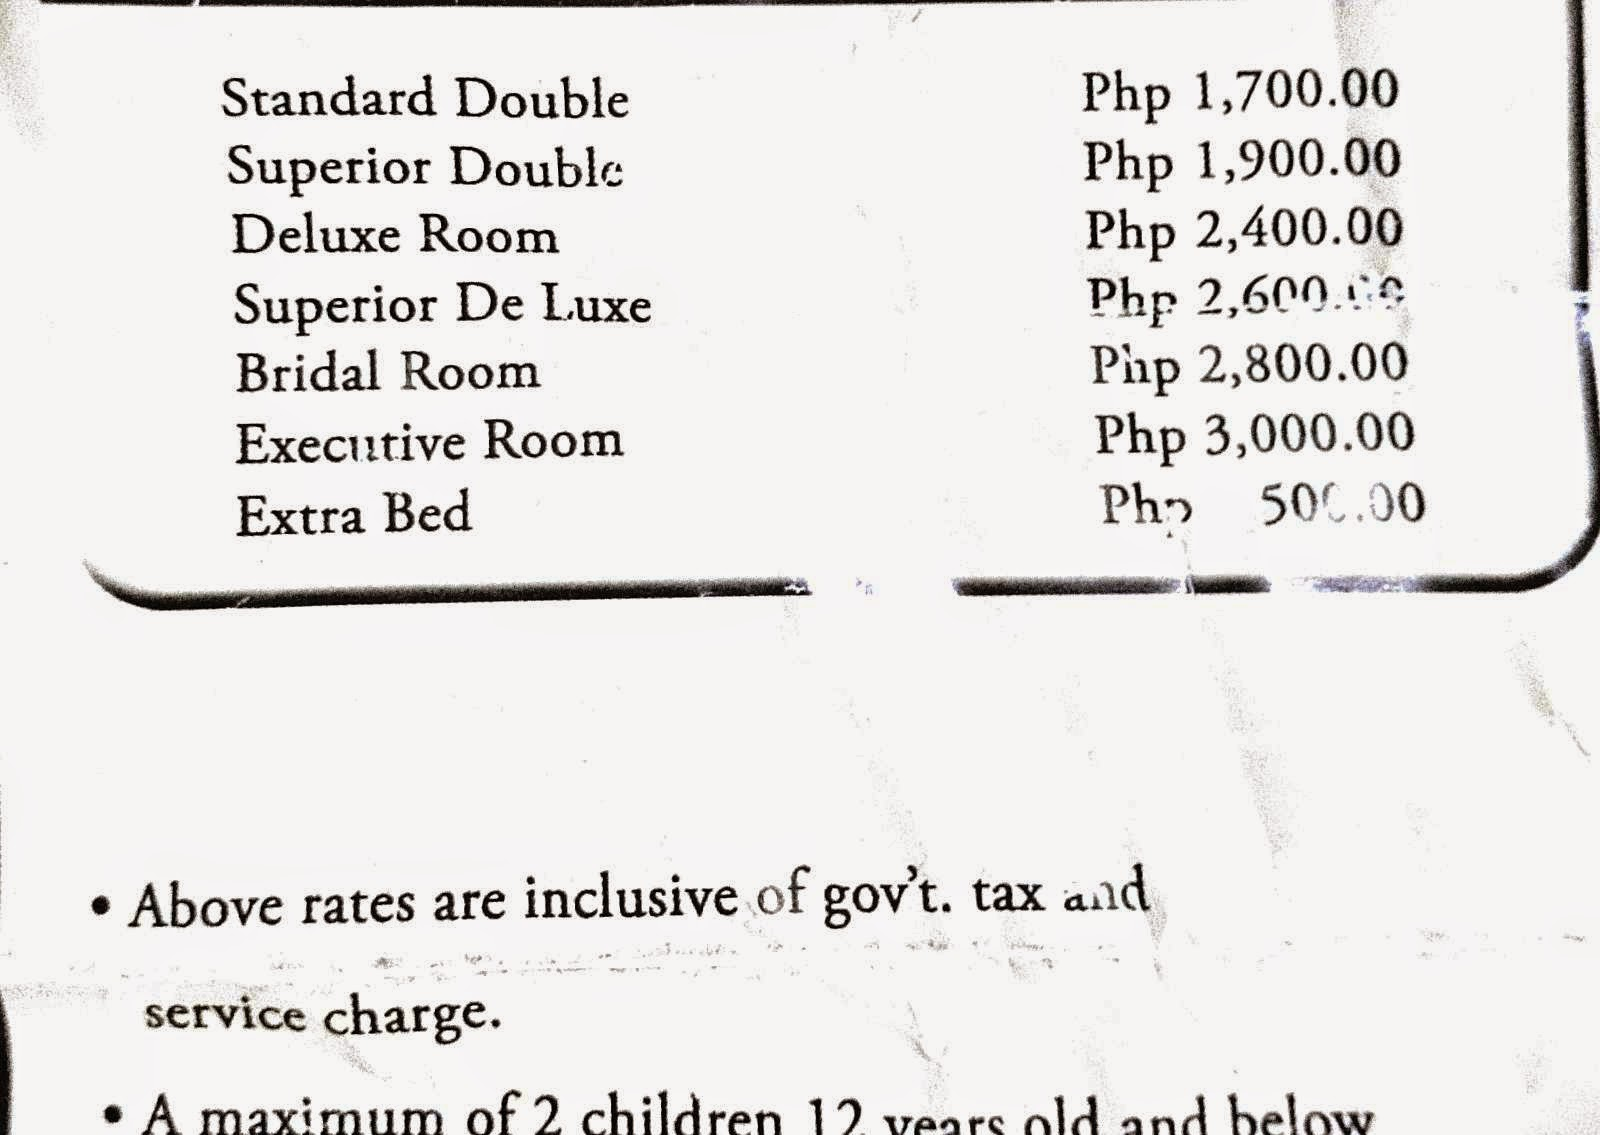 The Budget Traveller Philippines